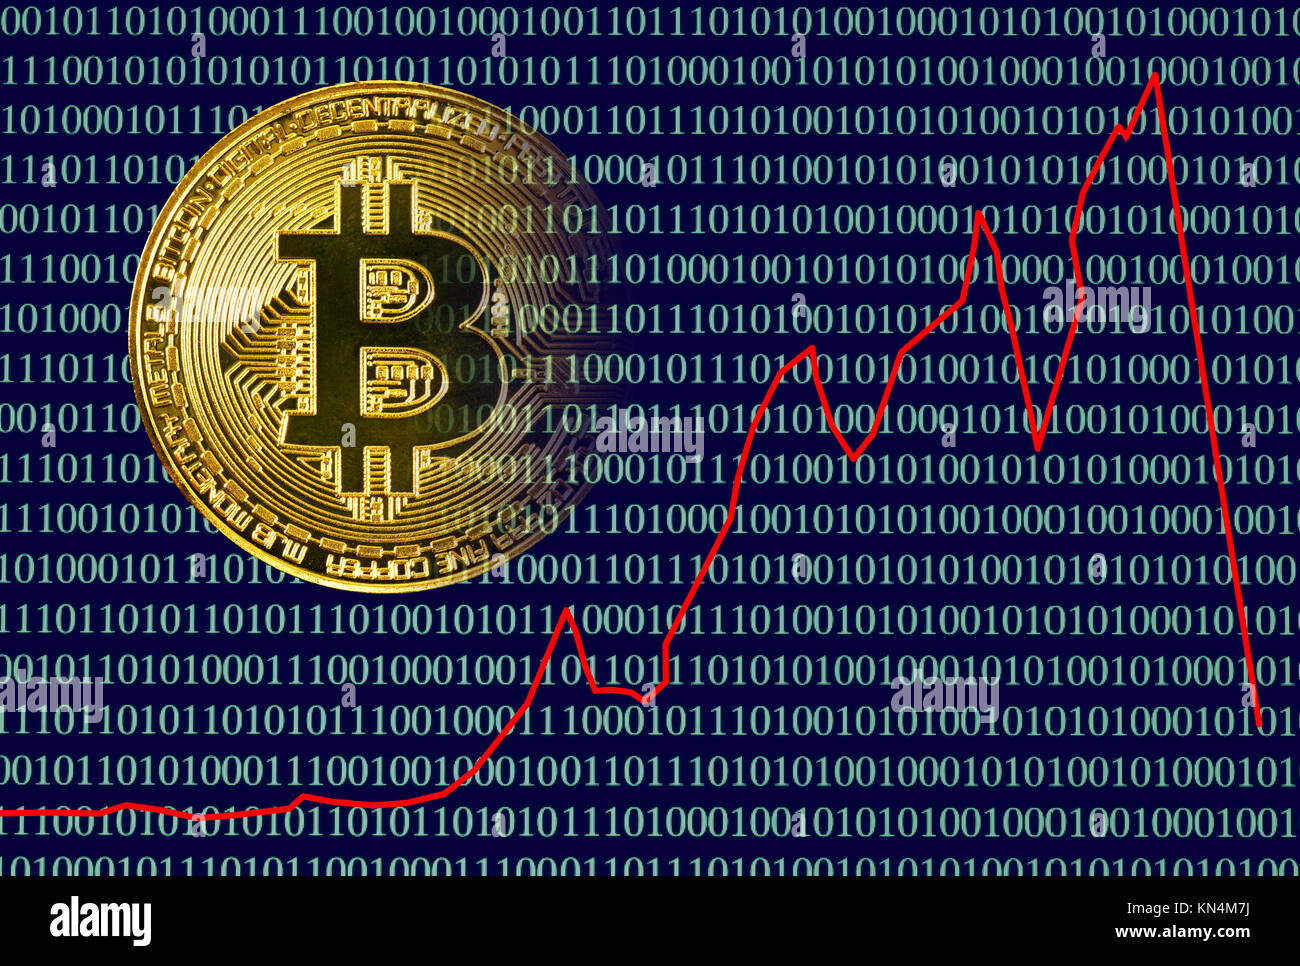 Symbolic Image Crash Digital Currency, Golden Physical Coin Bitcoin with Digital Binary Code - Stock Image